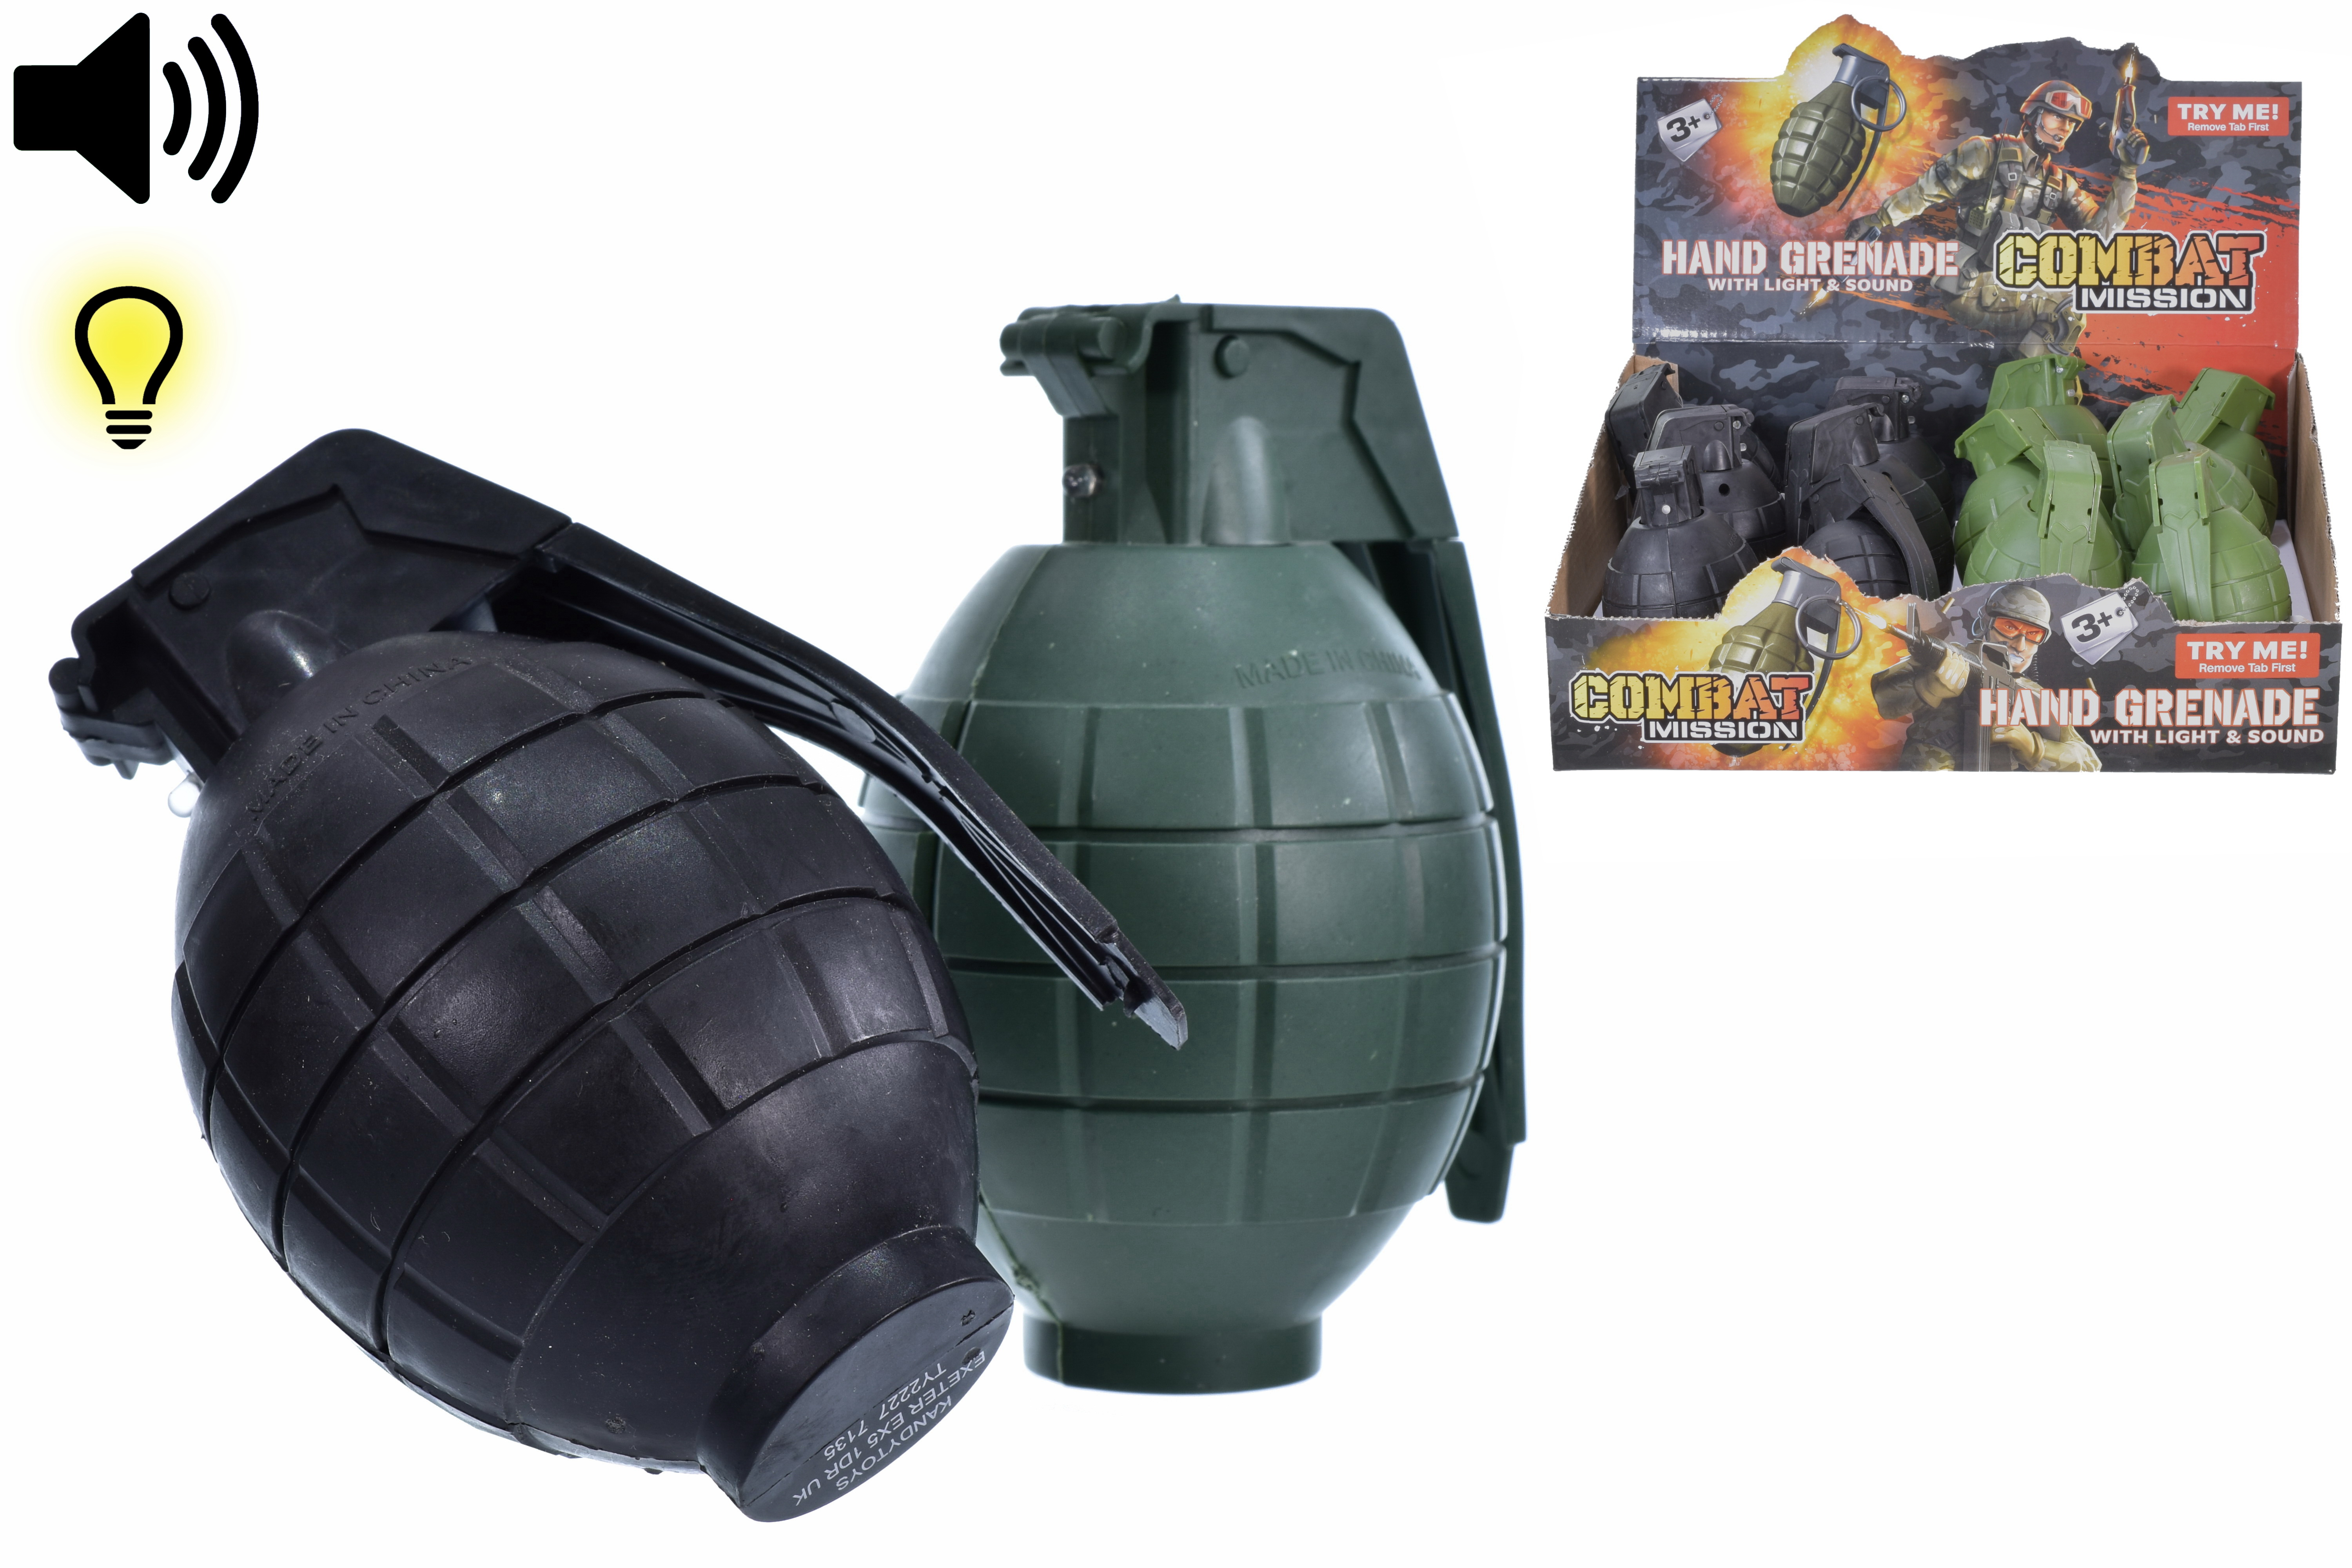 "Hand Grenade With Sound & Light In Dbx ""Combat Mission"""